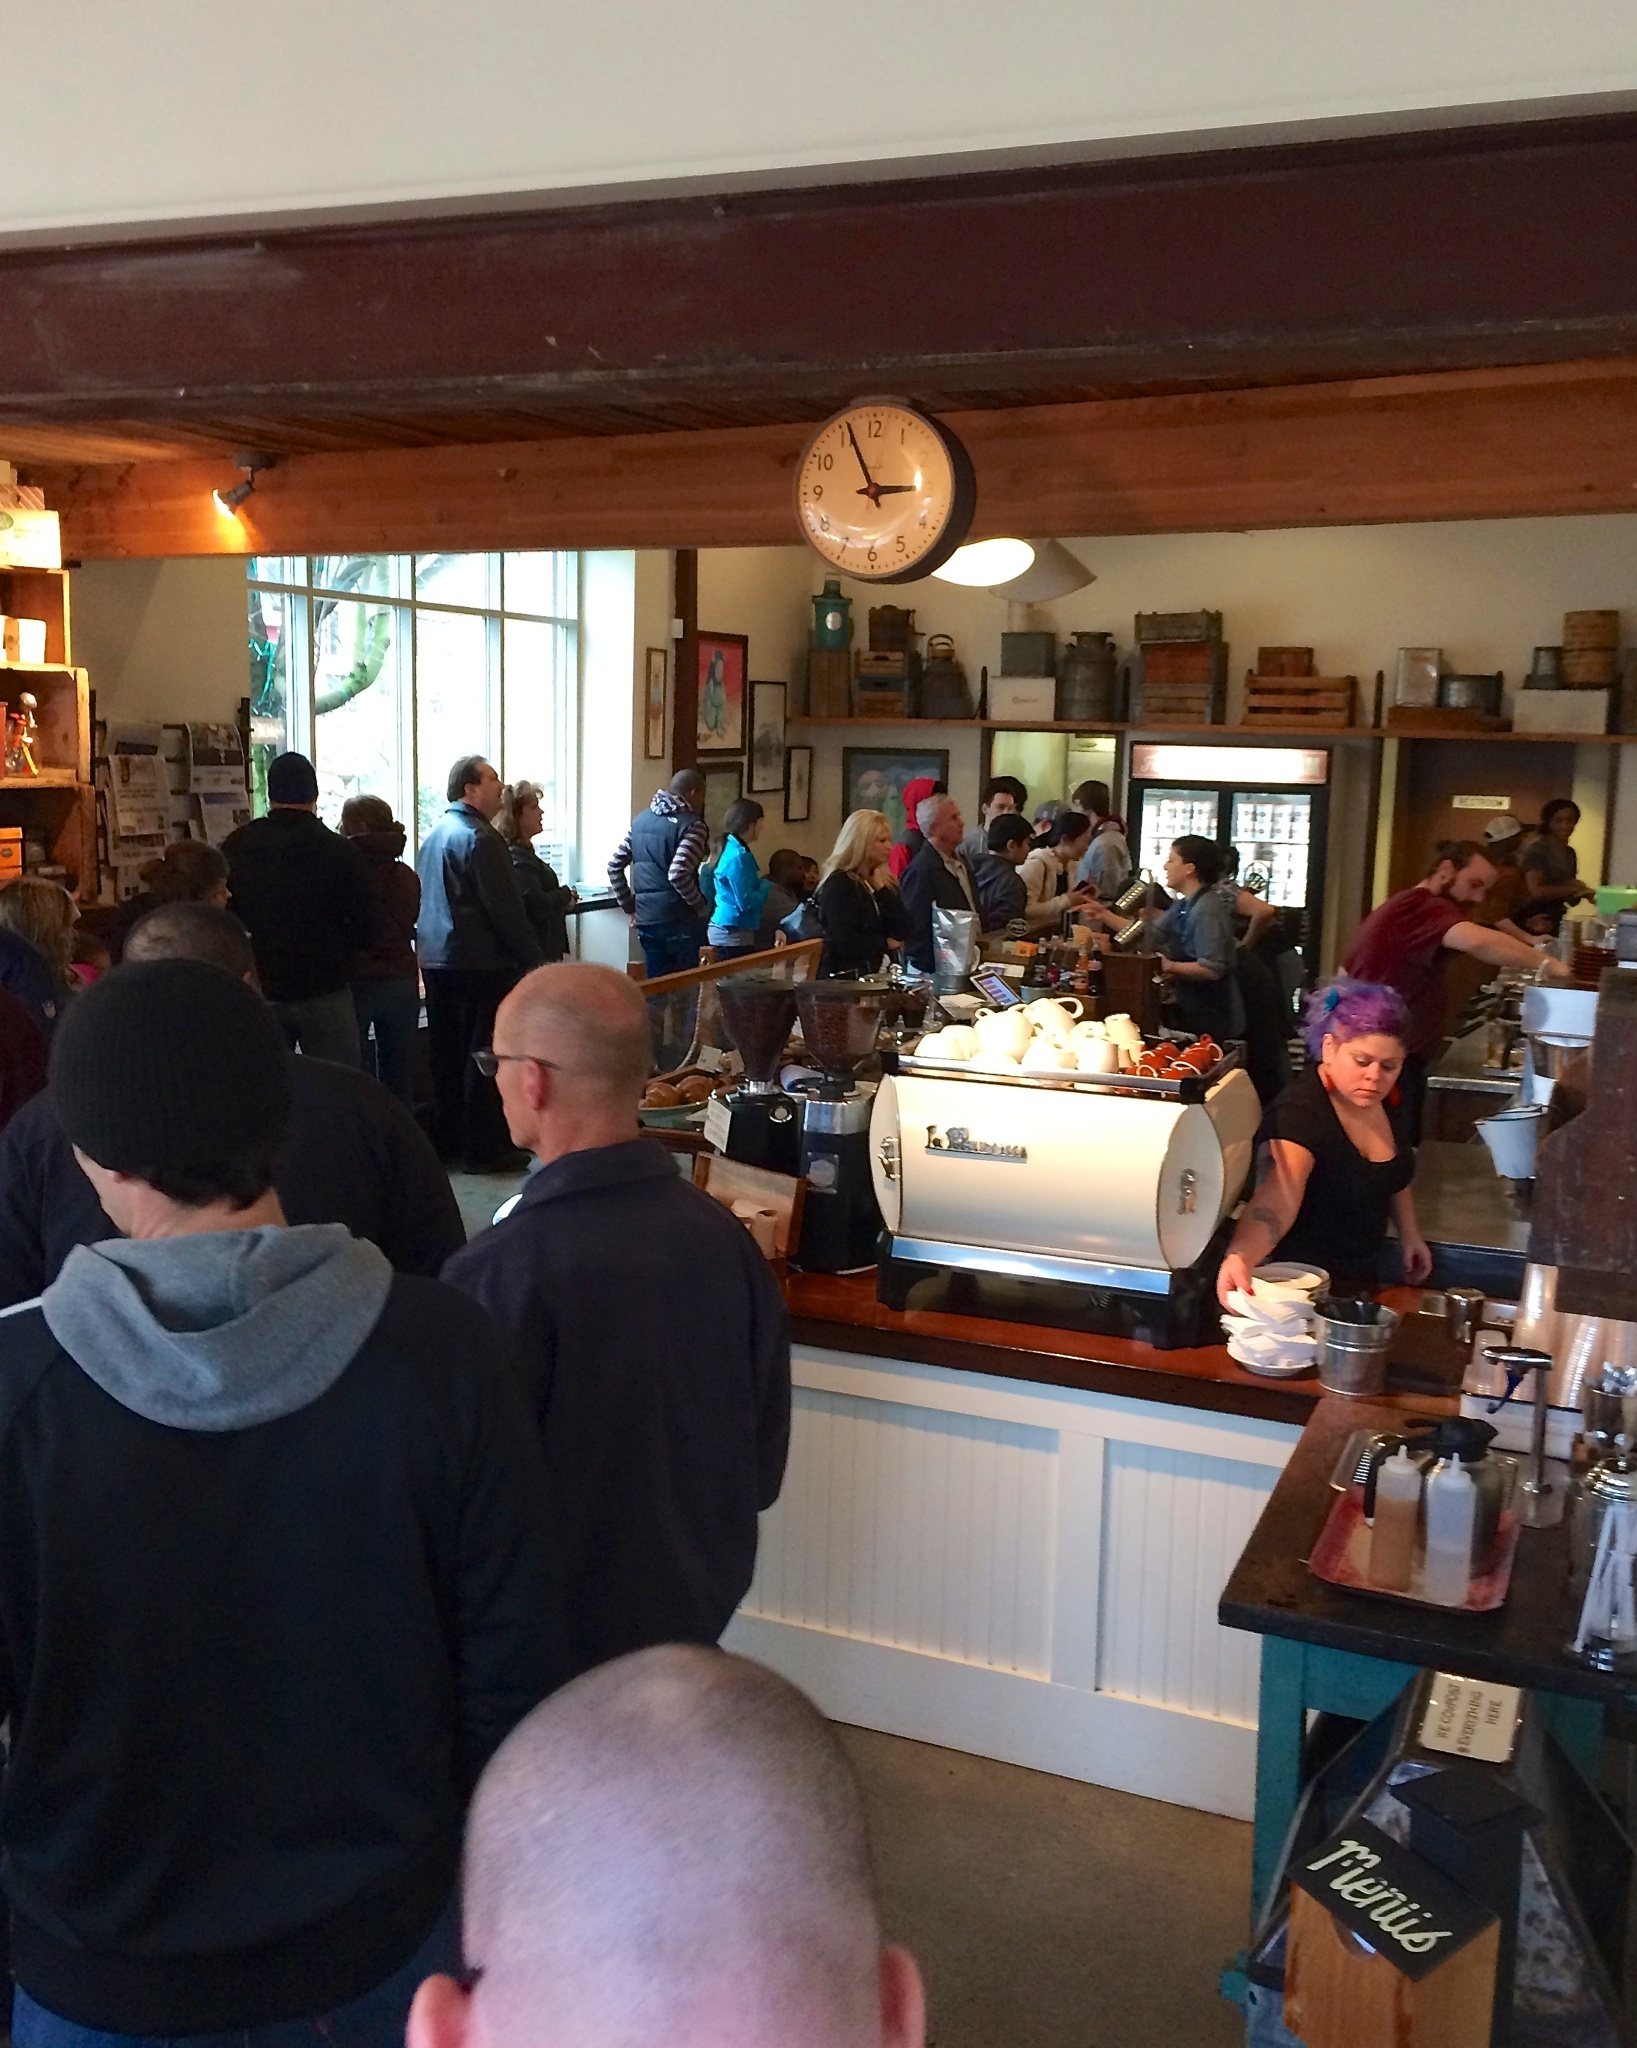 Long line at the Salt and Straw